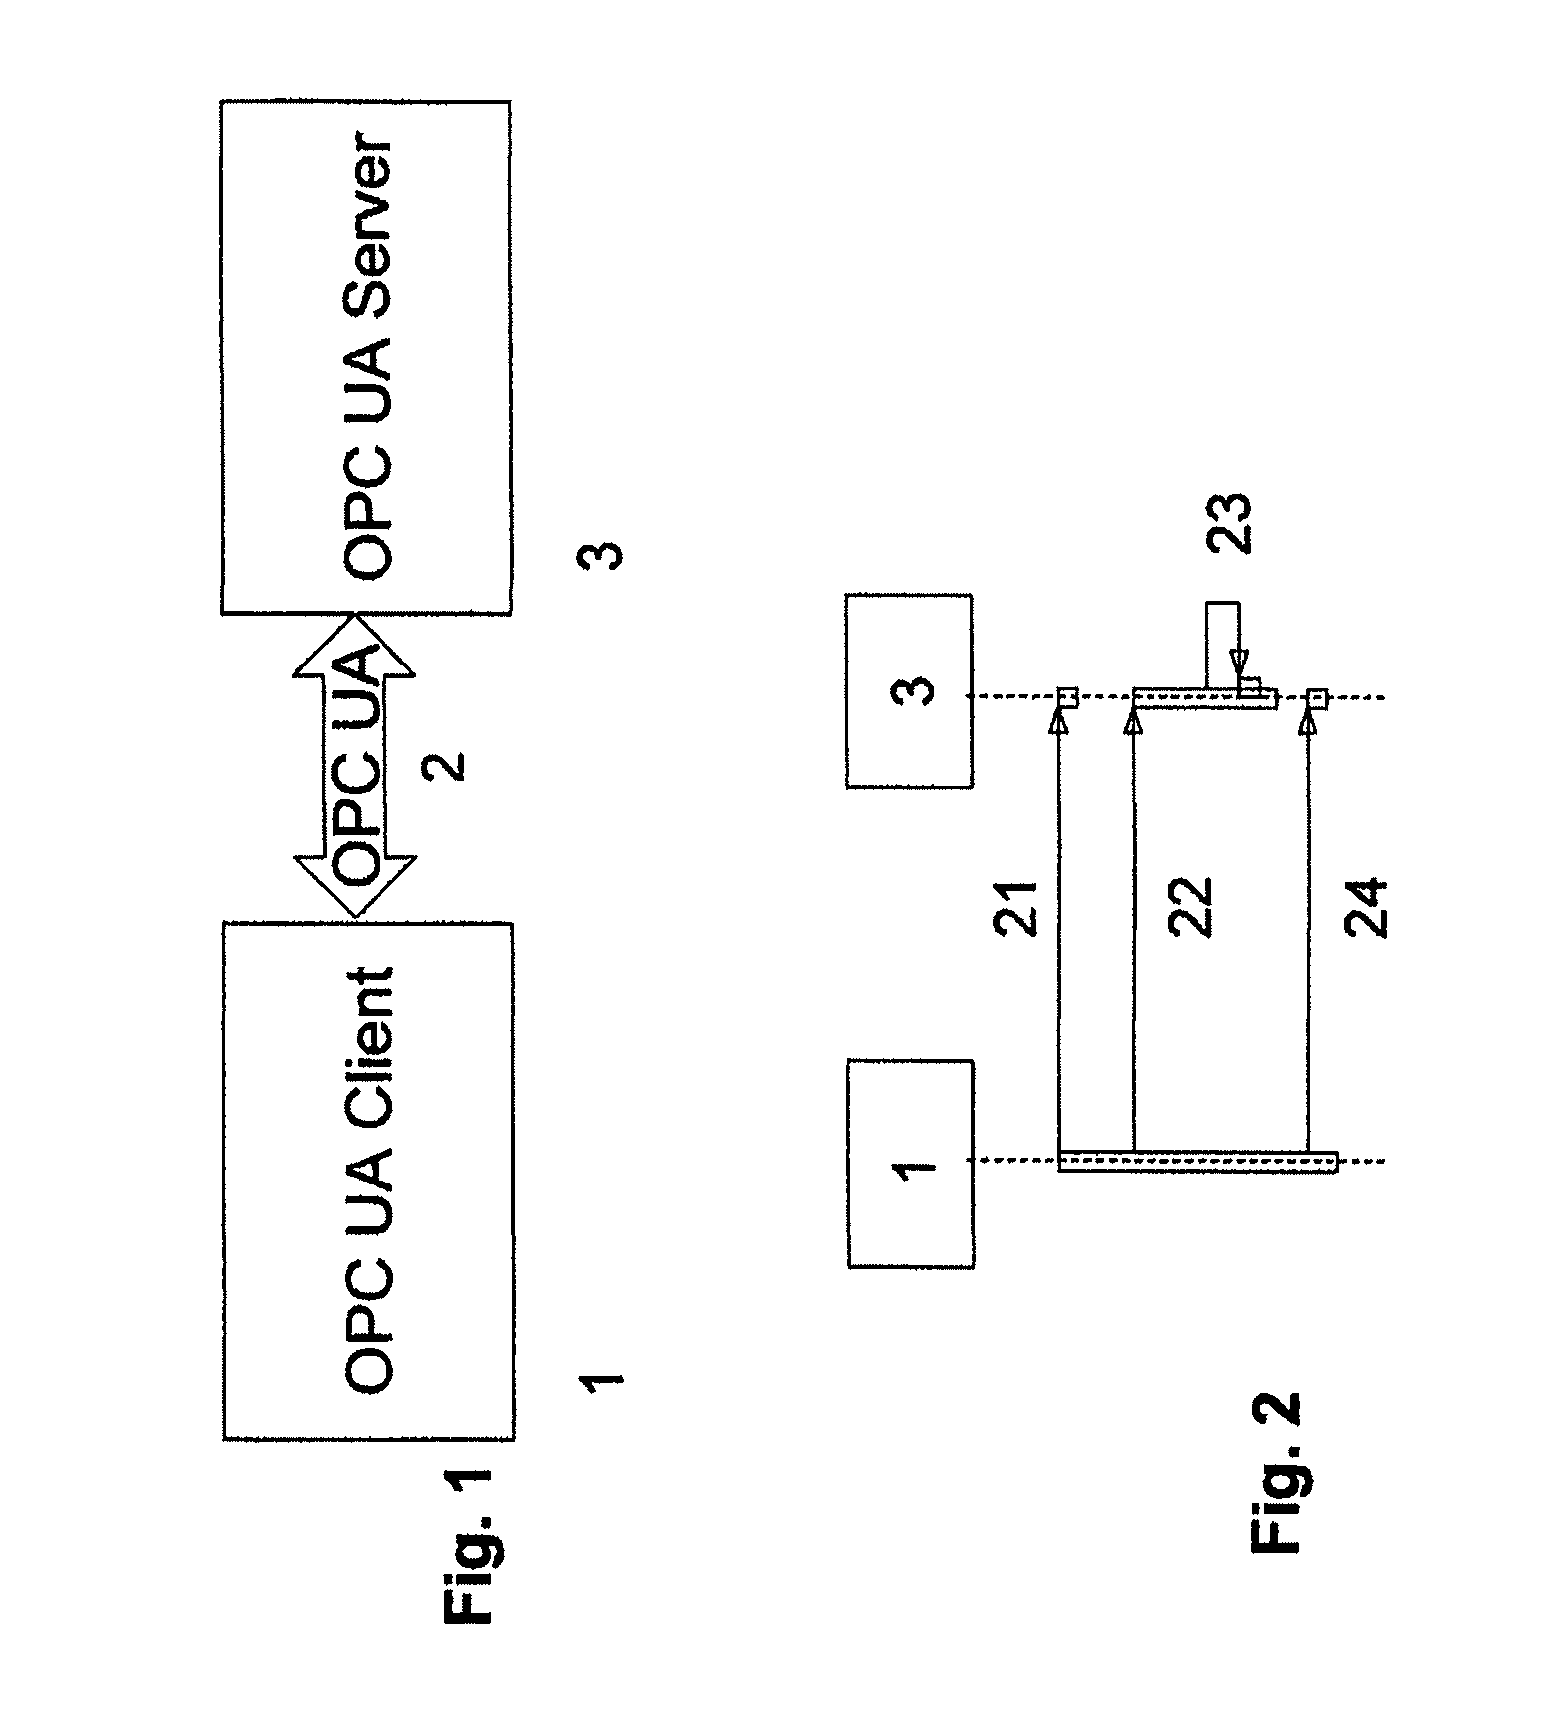 Patent US8423608 - Method and device for communicating according to